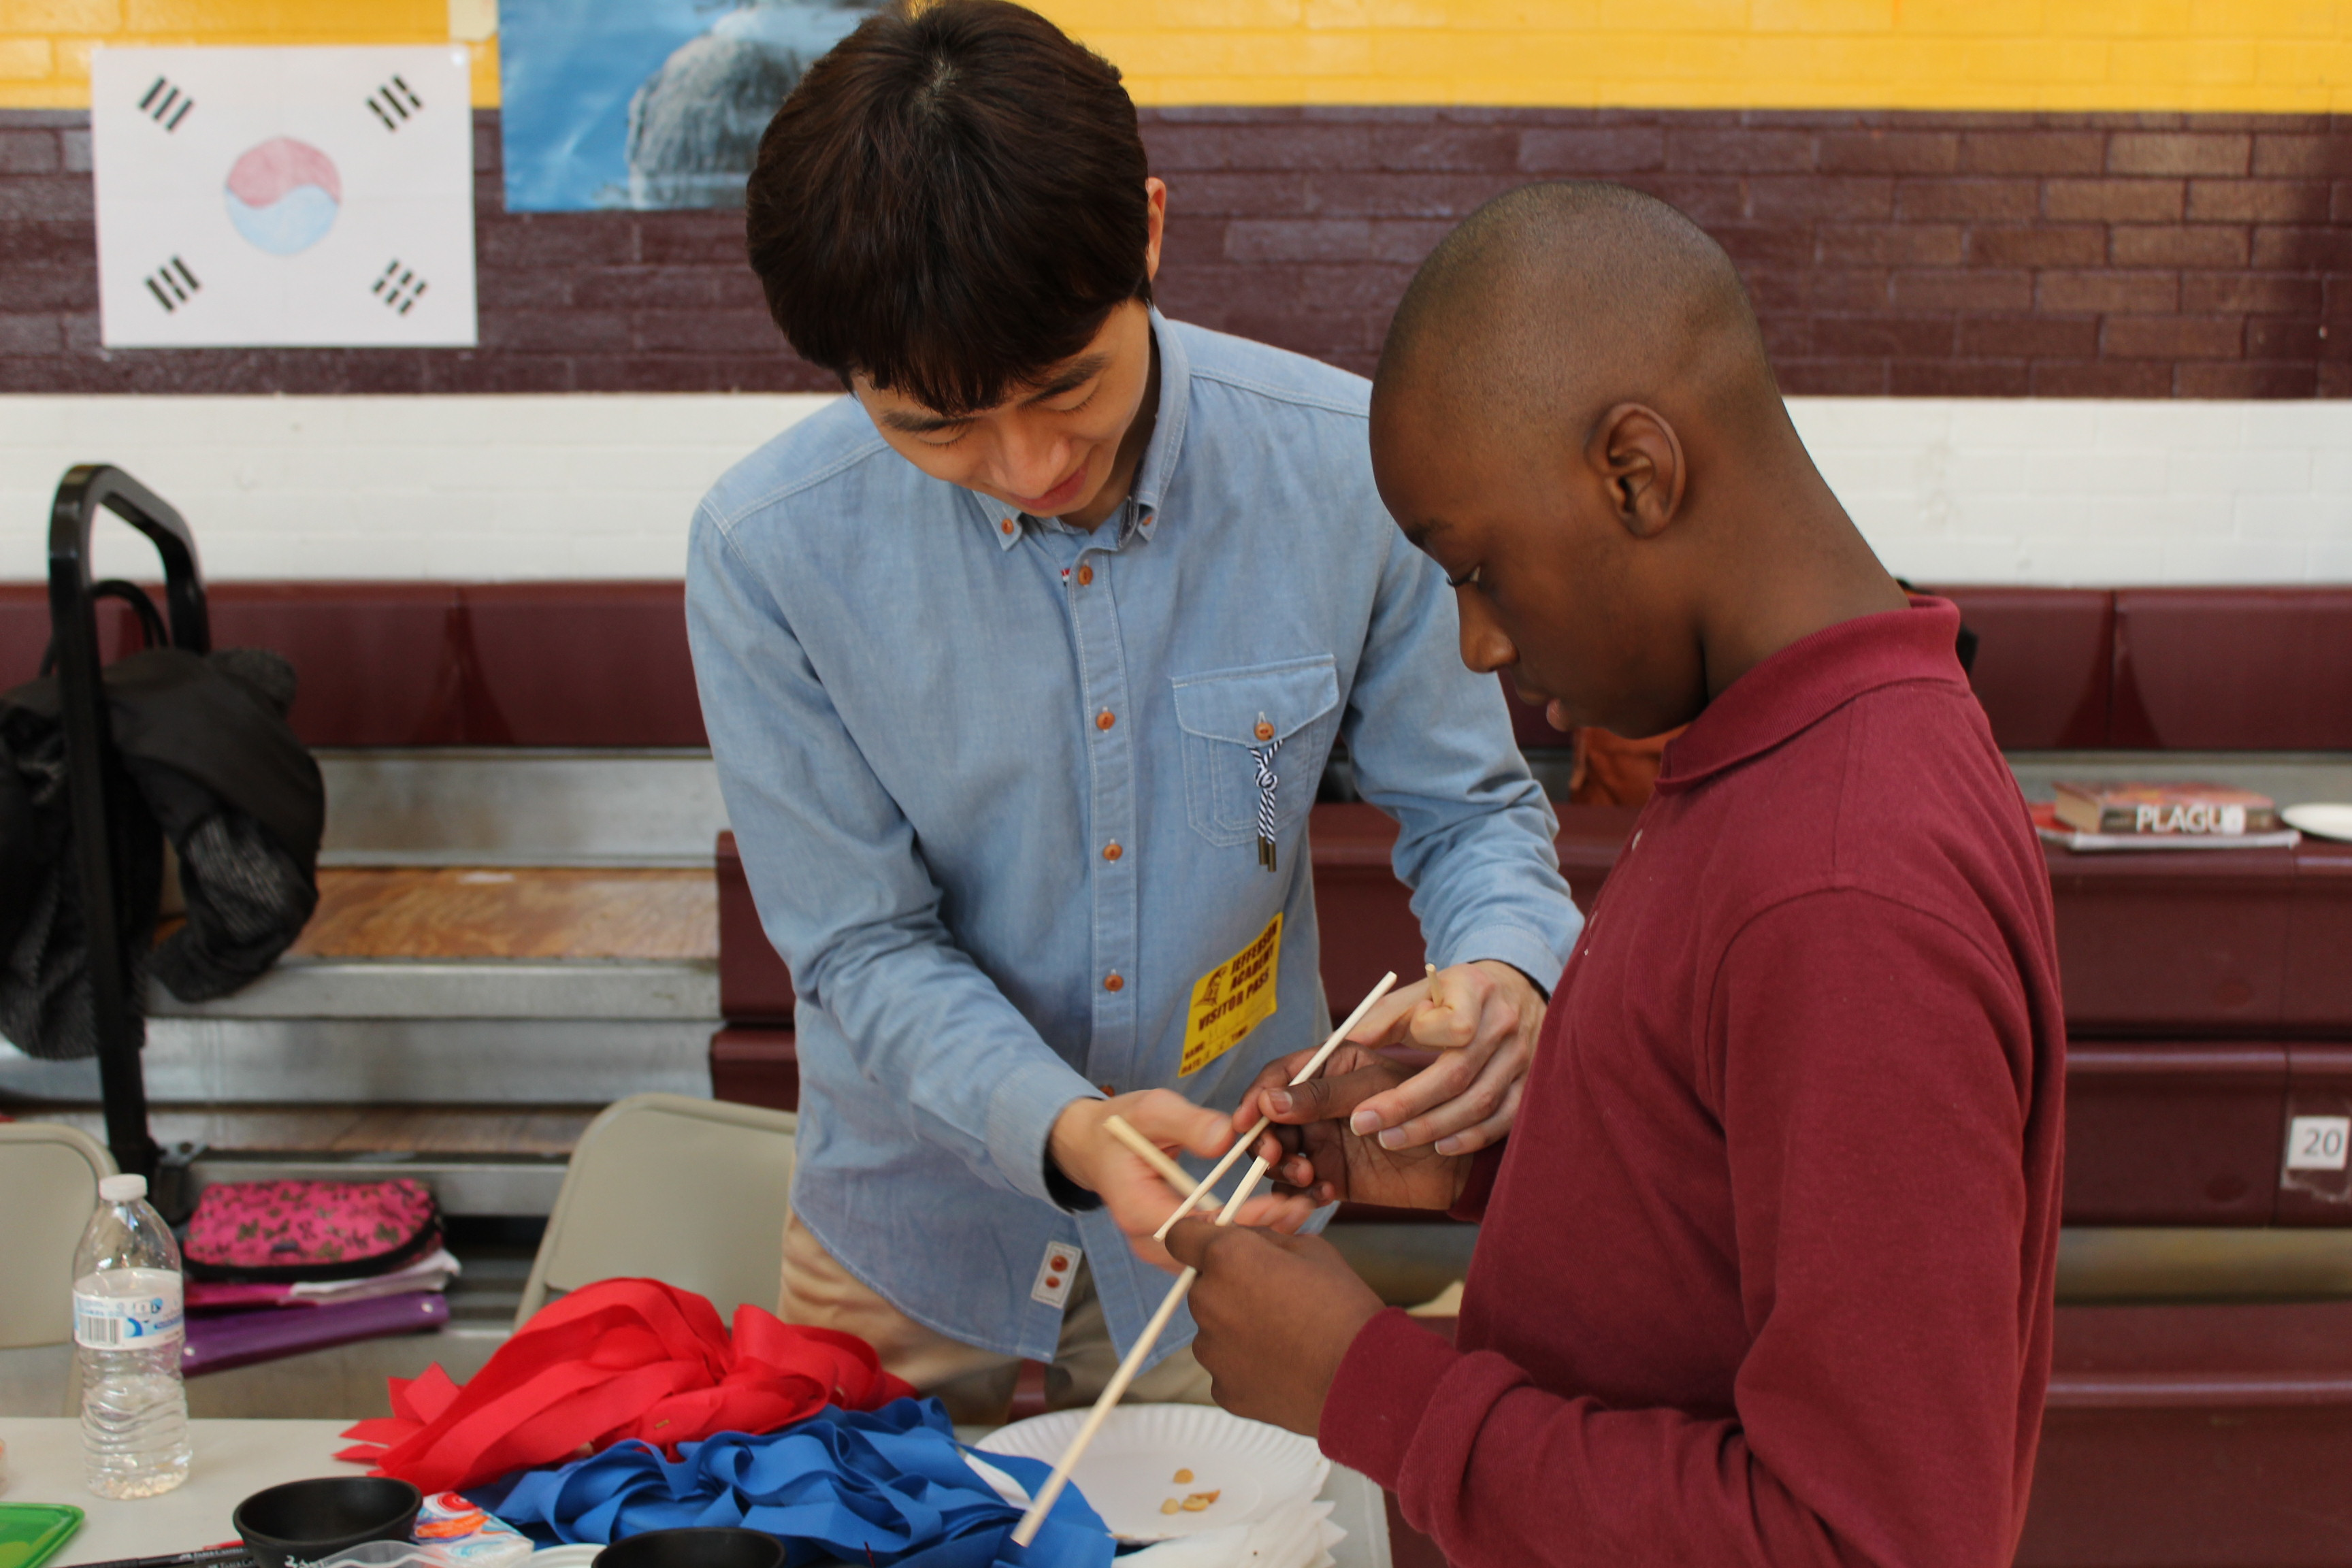 A Korea WEST exchange participant teaches an American student in Jefferson High School in D.C. how to use chopsticks and a play Jegichagi (Korean hacky sack).